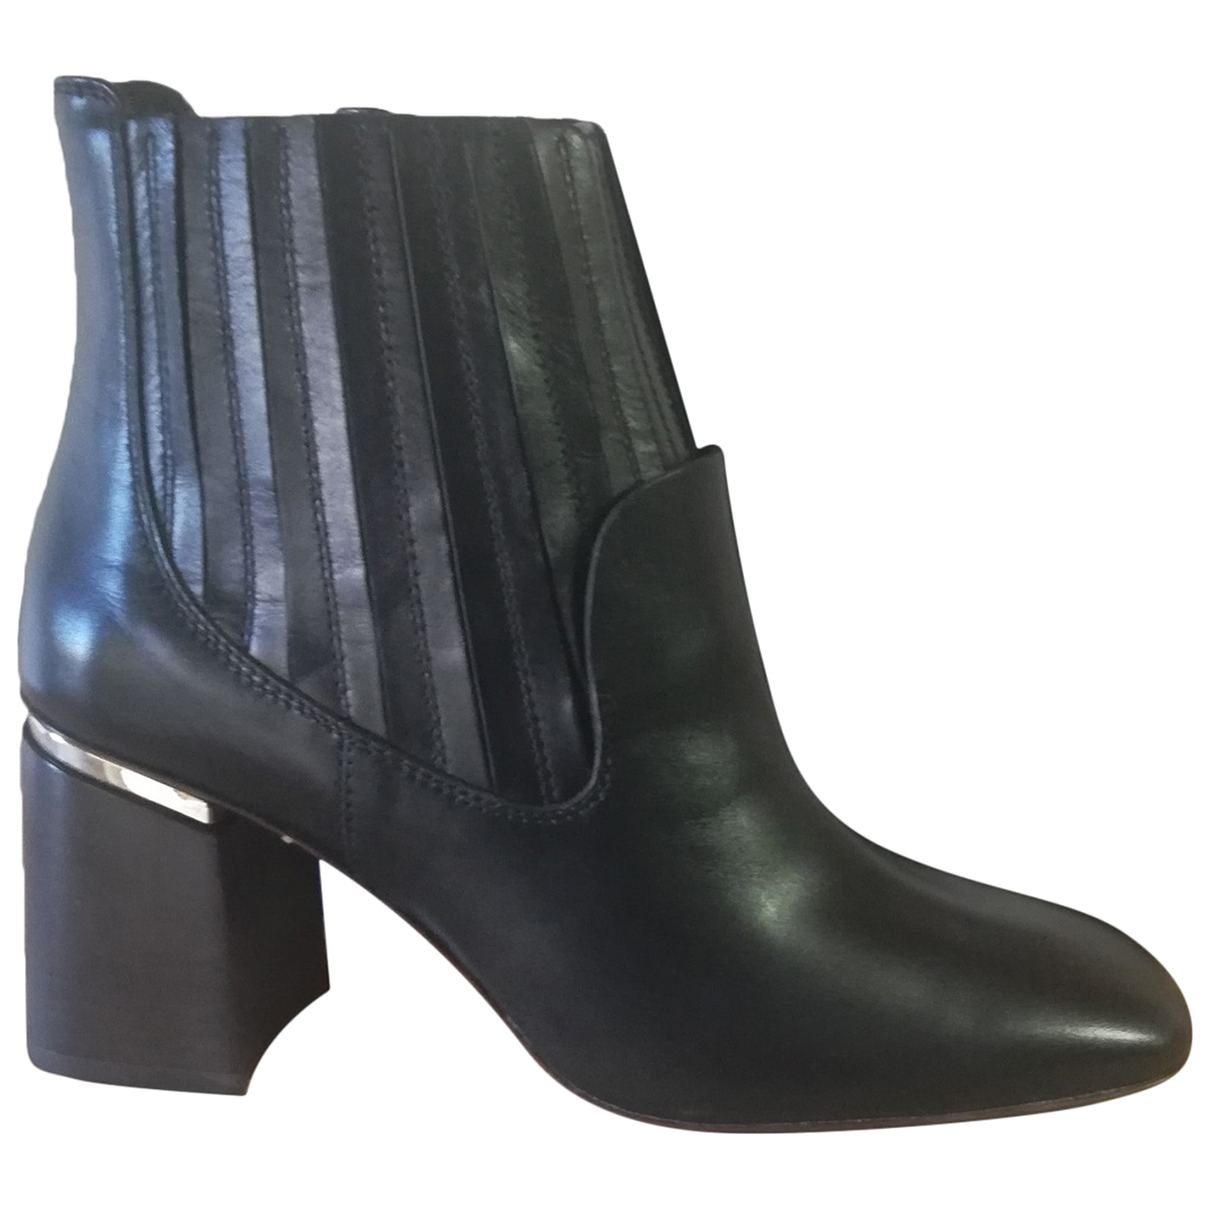 Tod's N Black Leather Boots for Women 37 EU